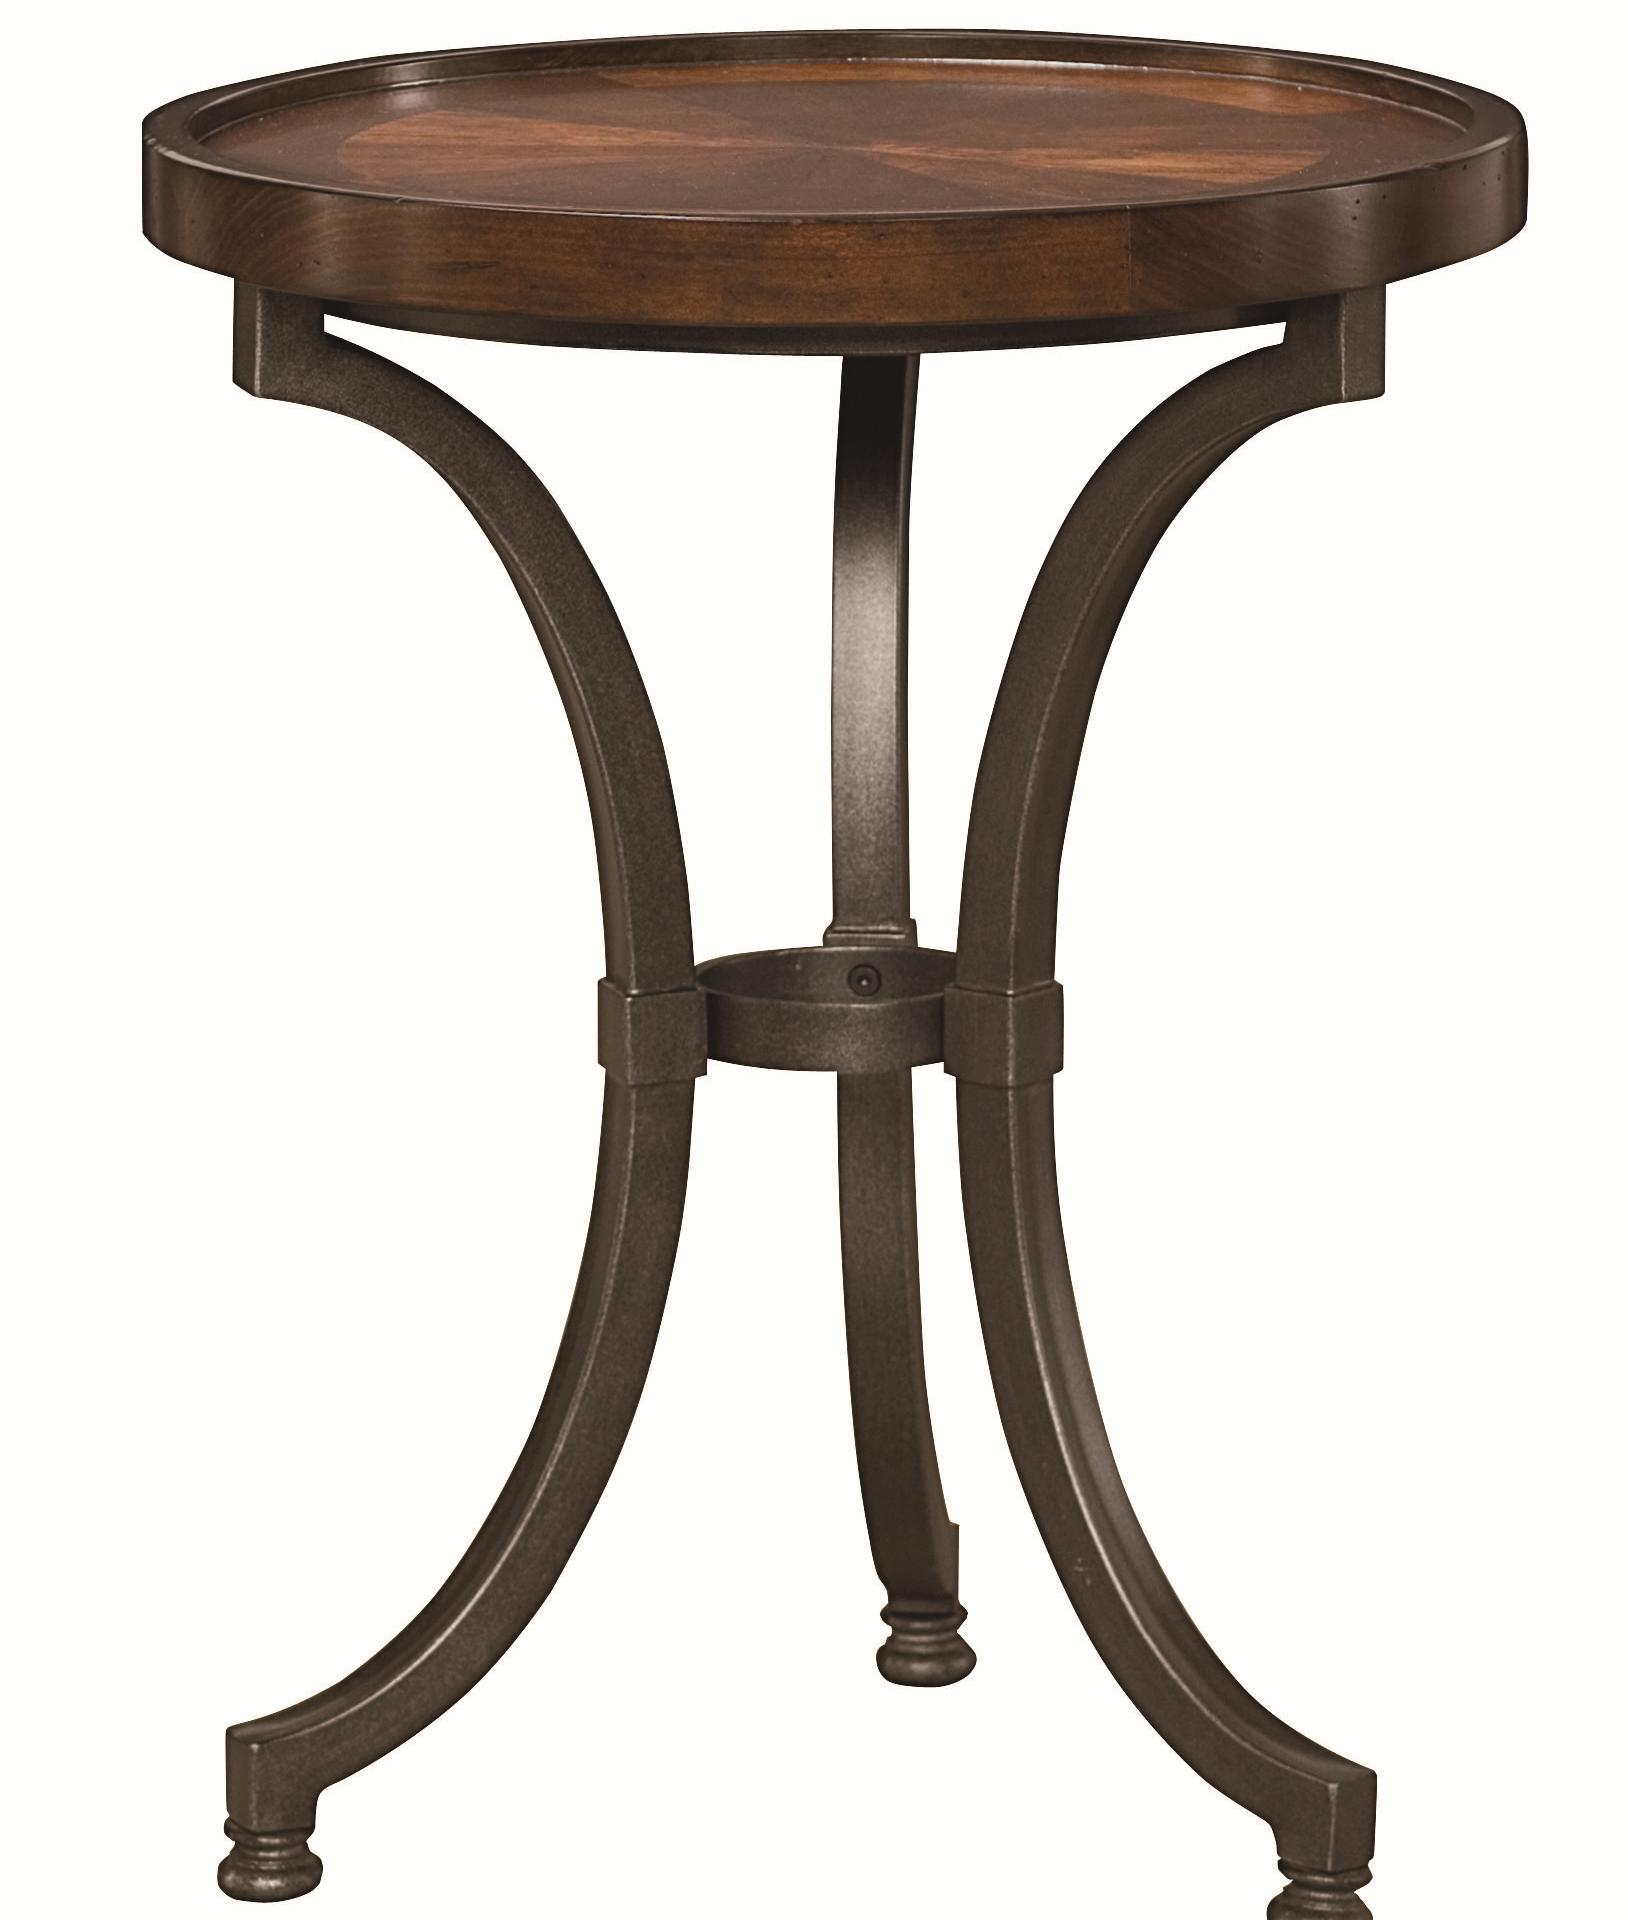 round chairside table with metal base hammary wolf and gardiner products color barrow accent wood patio seating sets coffee tables marble granite weber grill side computer desk